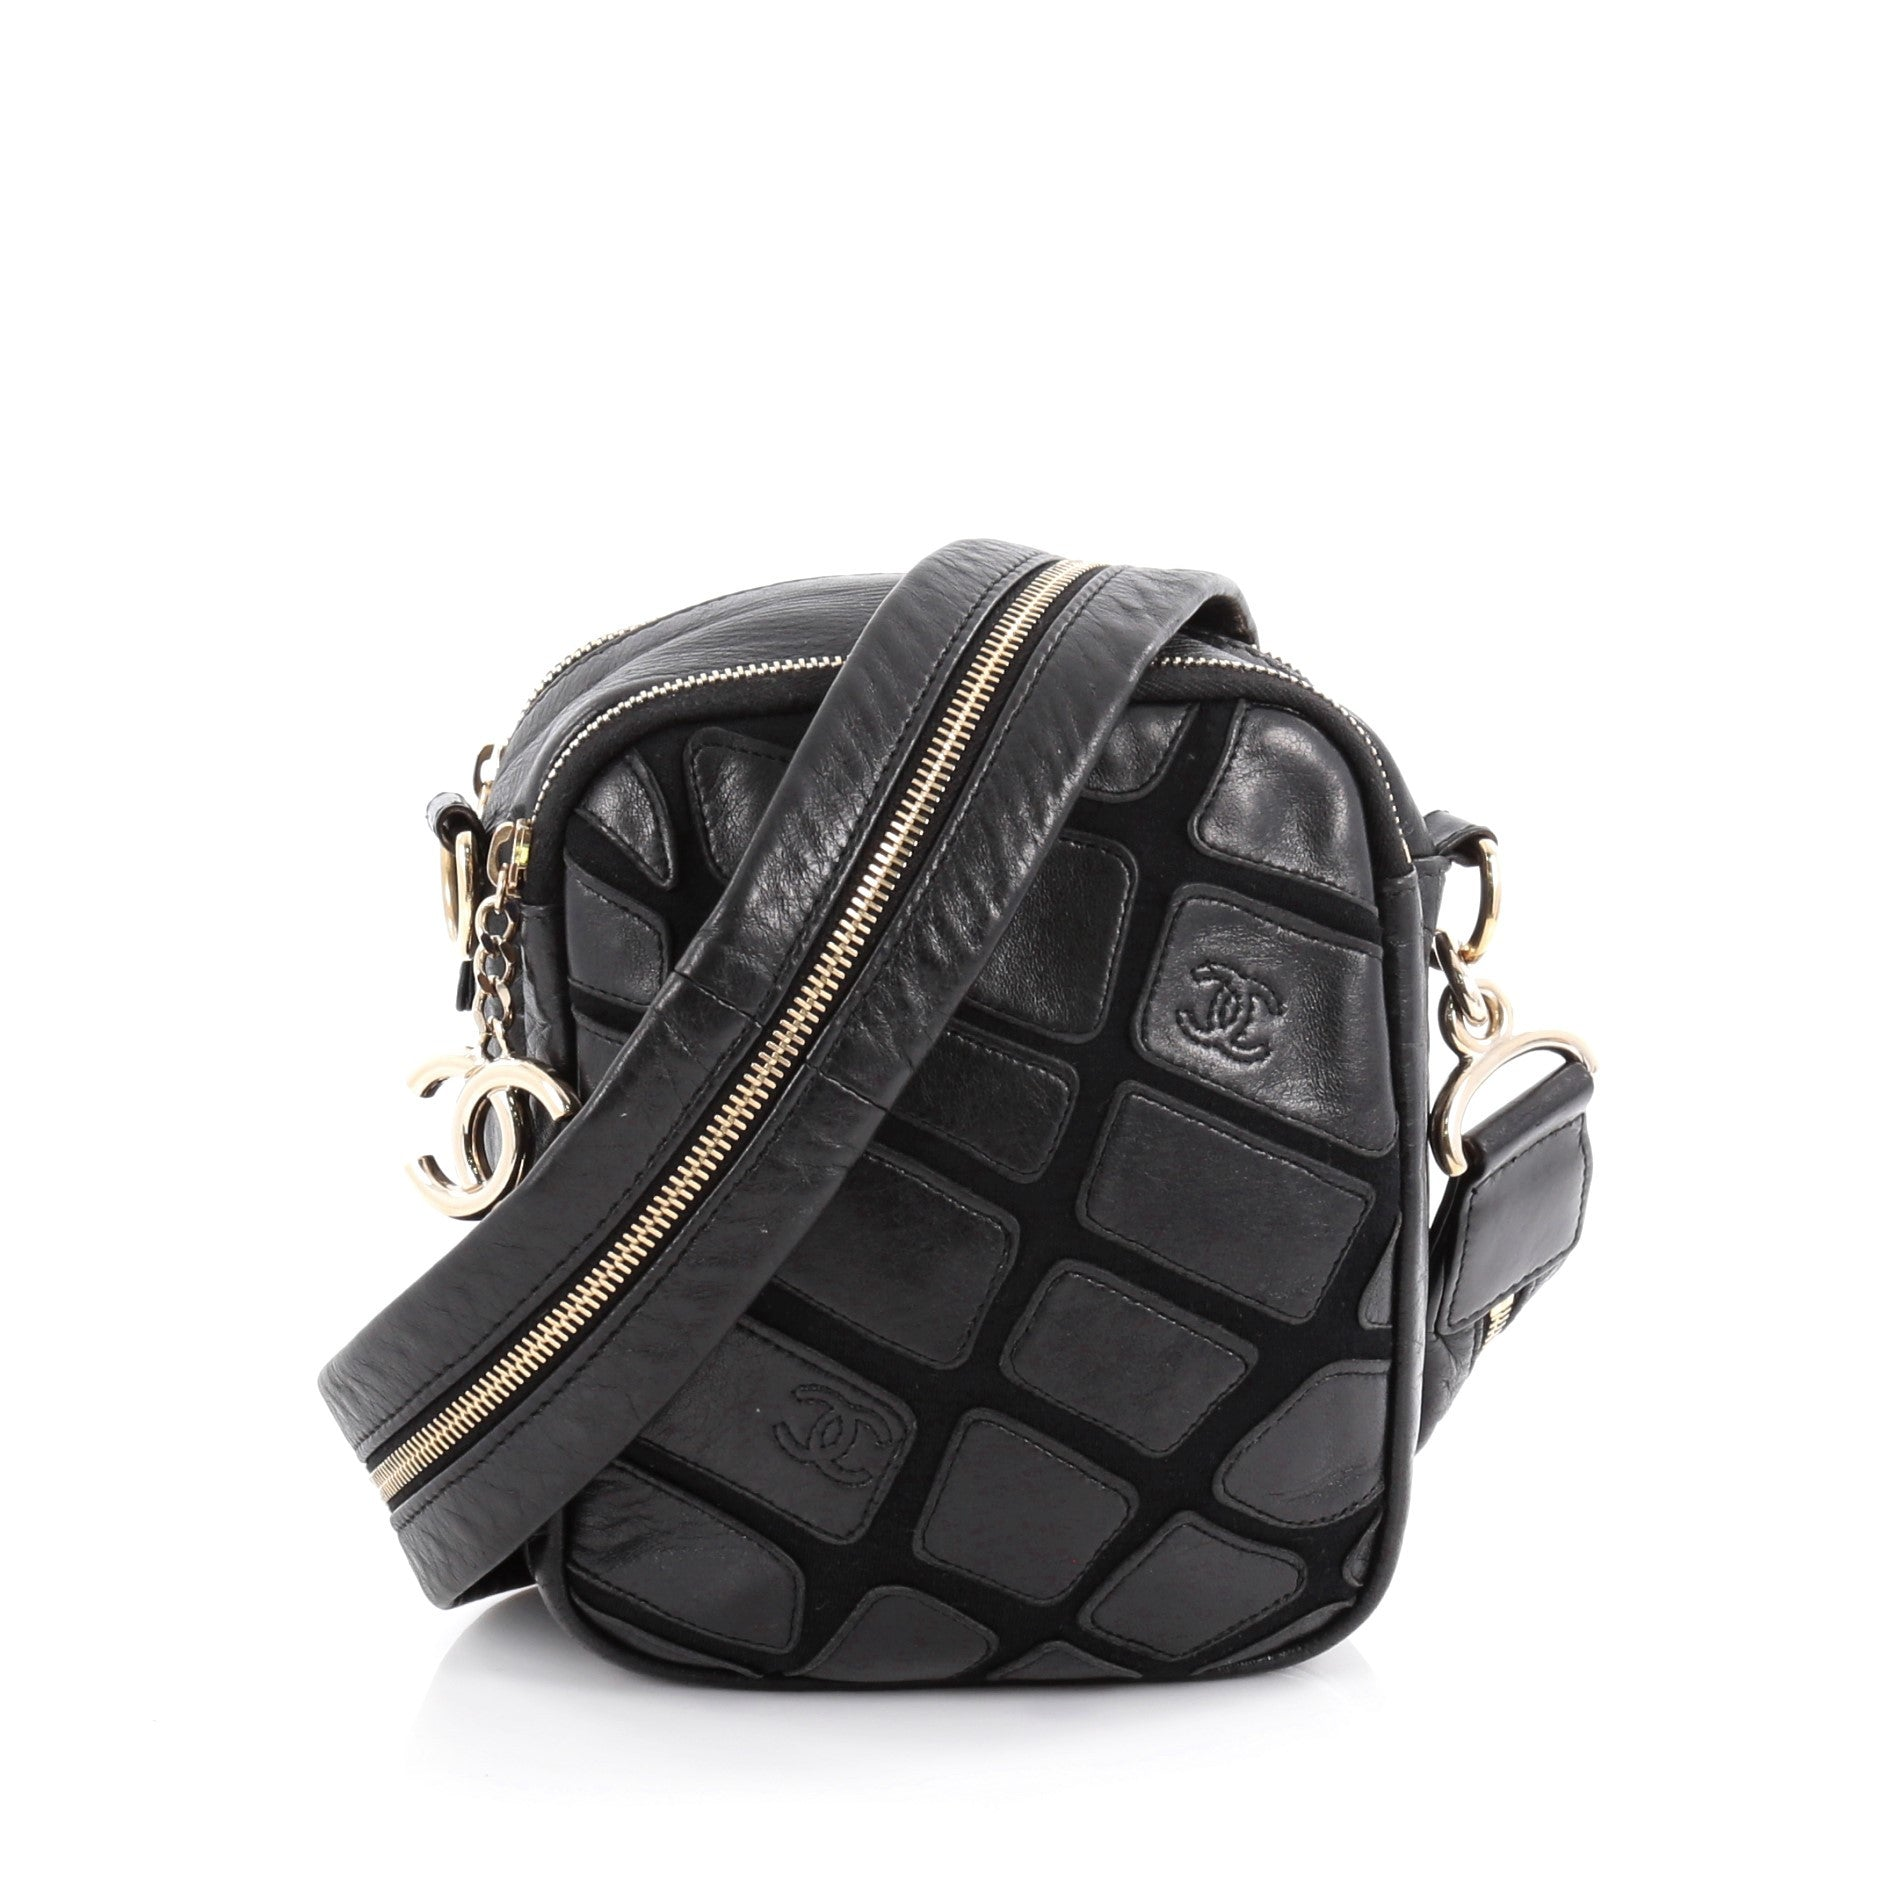 a48c5a3115ee 21014-01_Chanel_Scales_Camera_Bag_Leather_With_Jer_2D_0003.jpg?v=1499779966